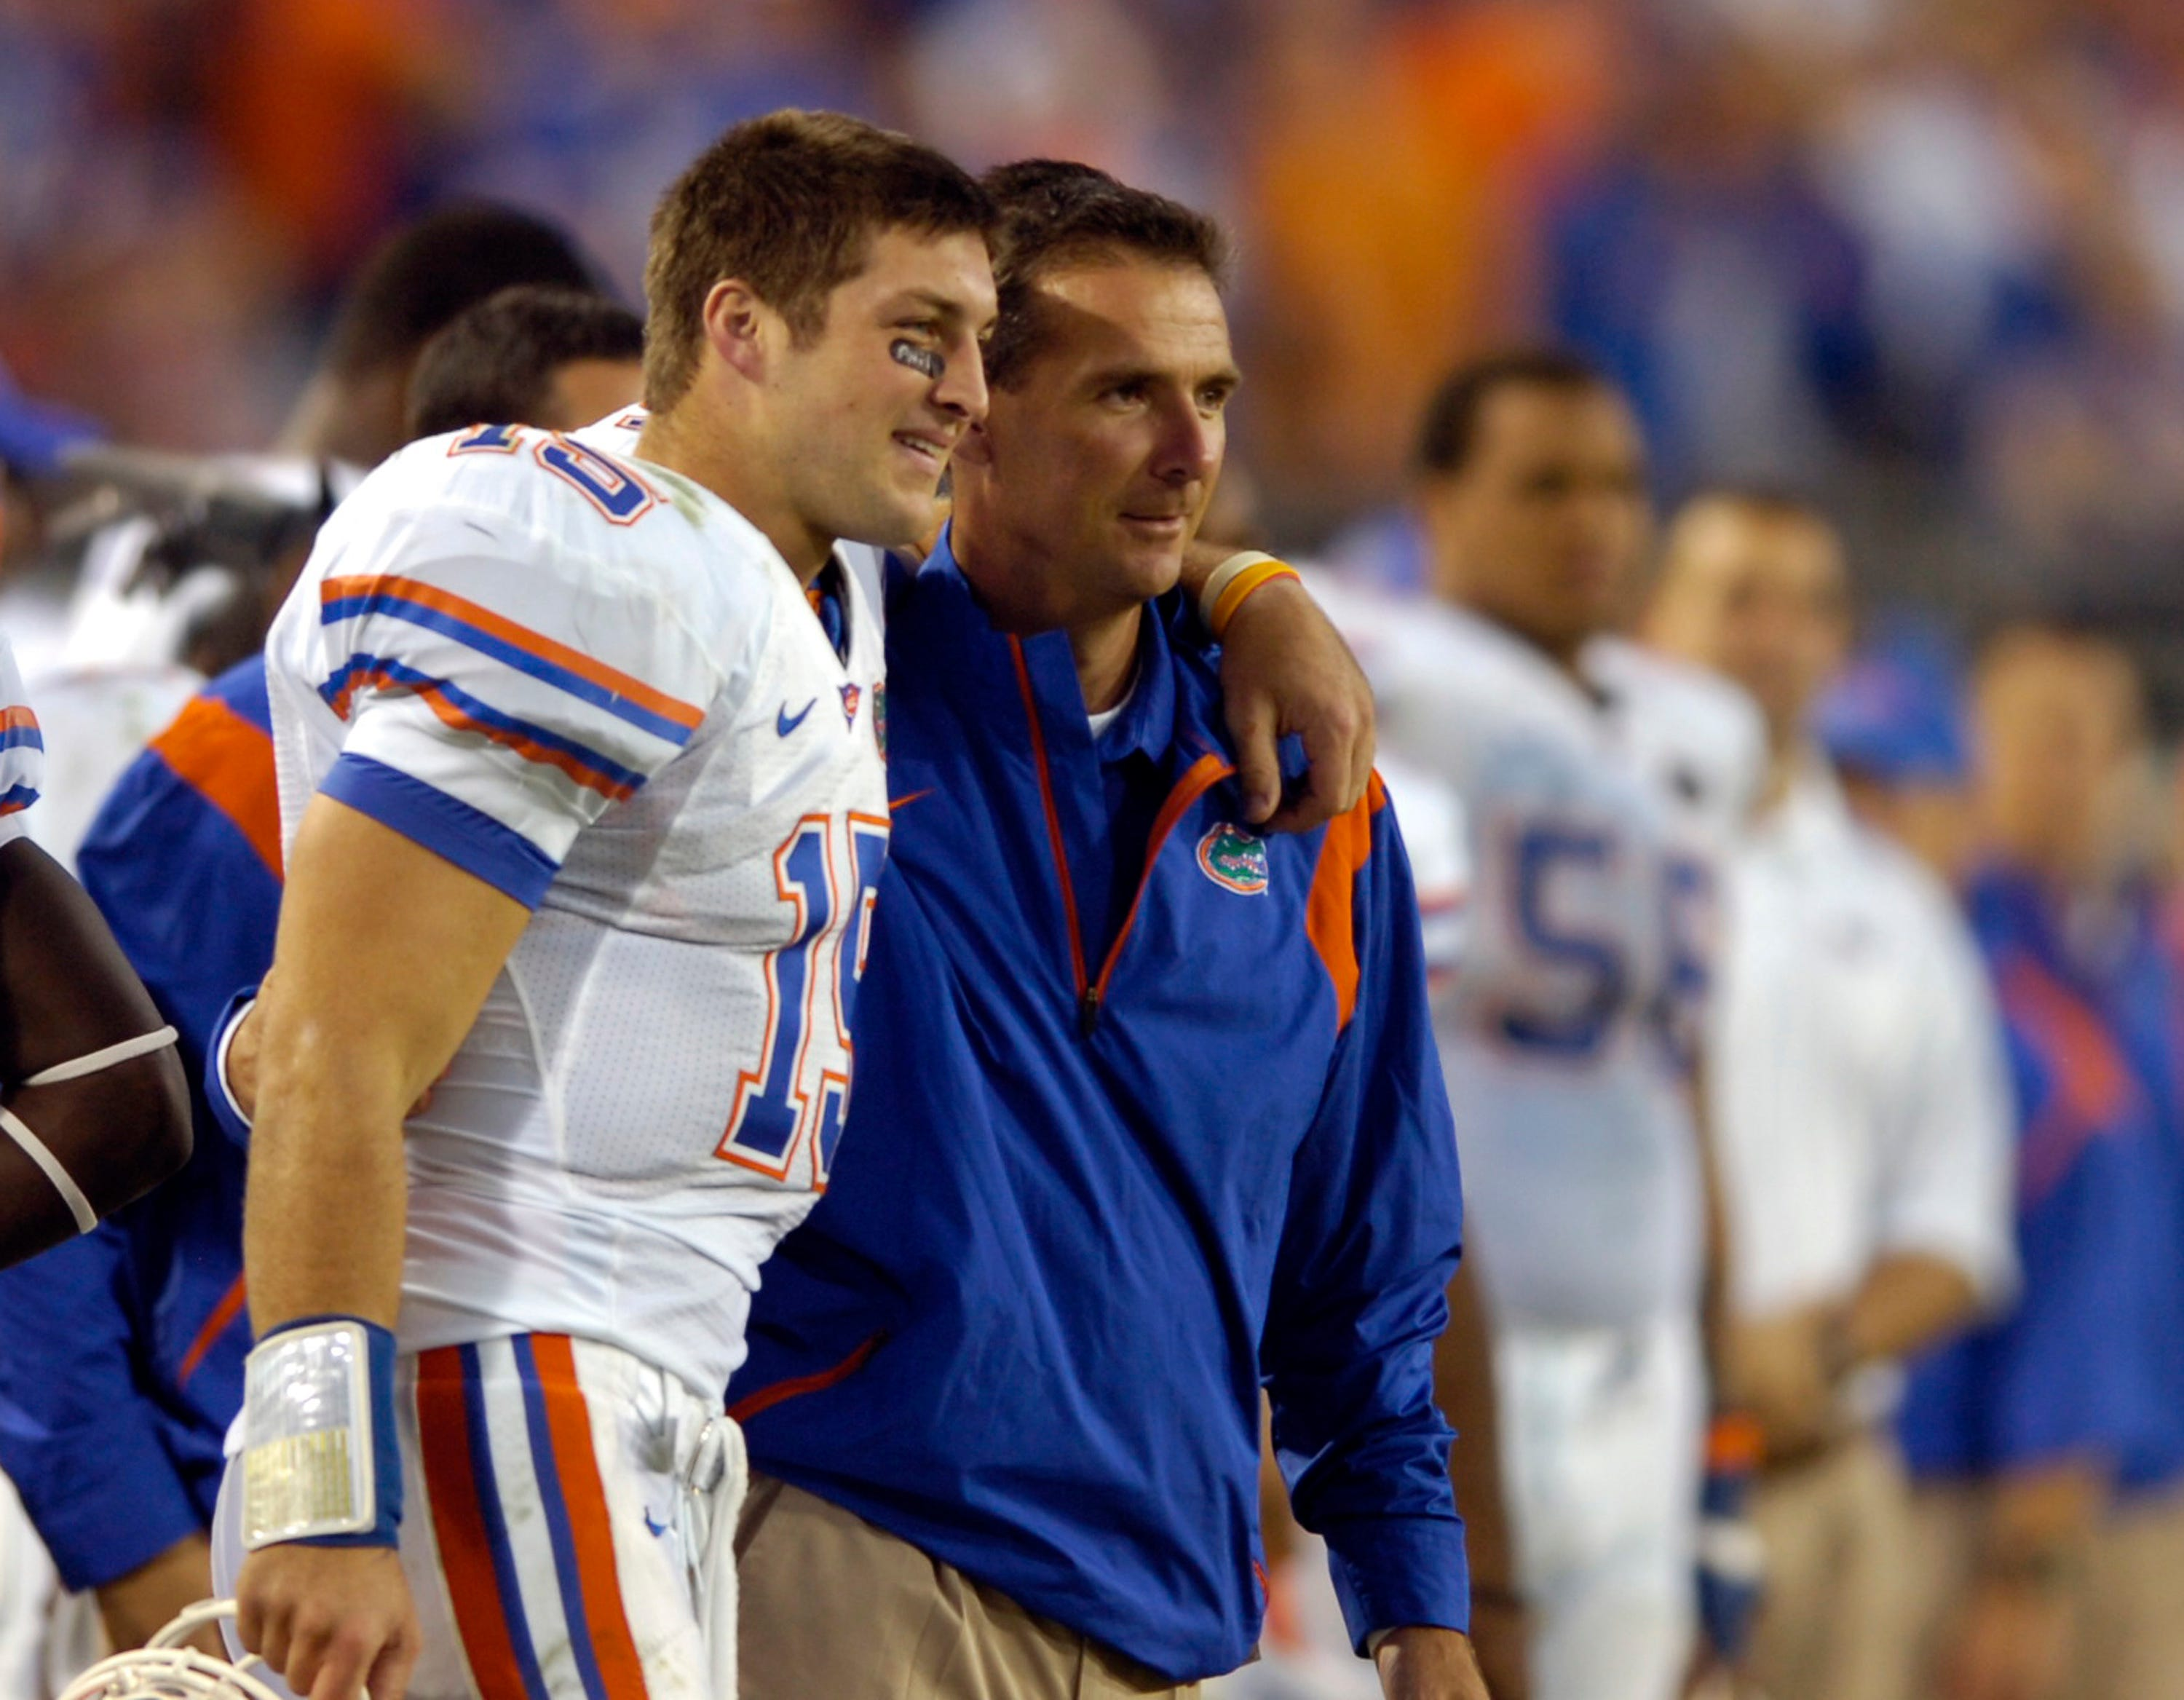 Opinion: If Tim Tebow is ever going to reconsider the NFL, the time is now